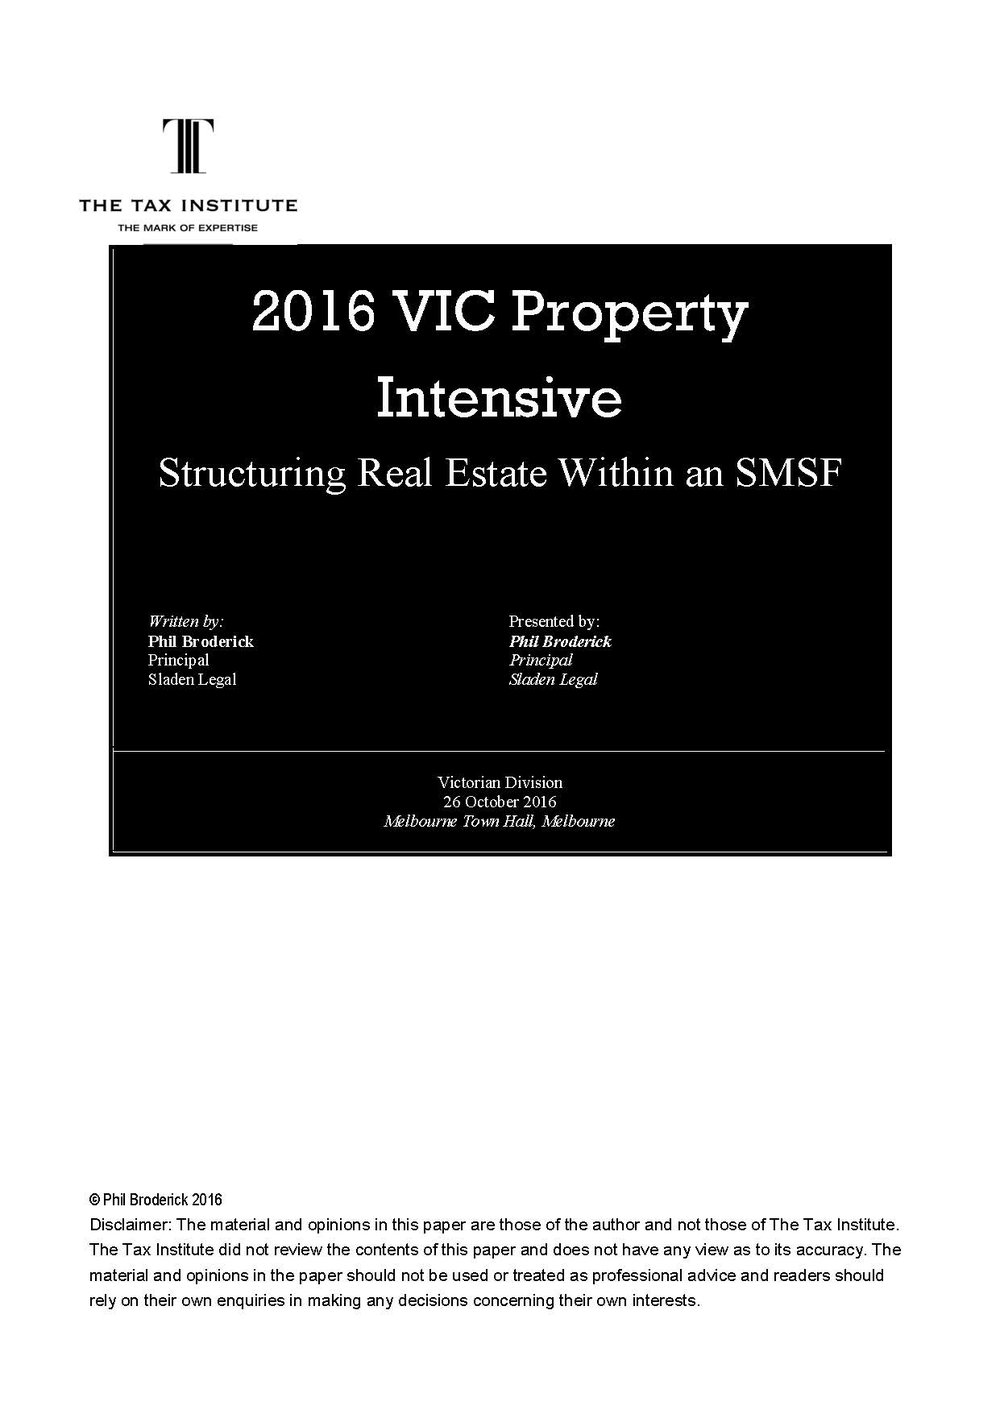 Structuring Real Estate within an SMSF 3 November 2016